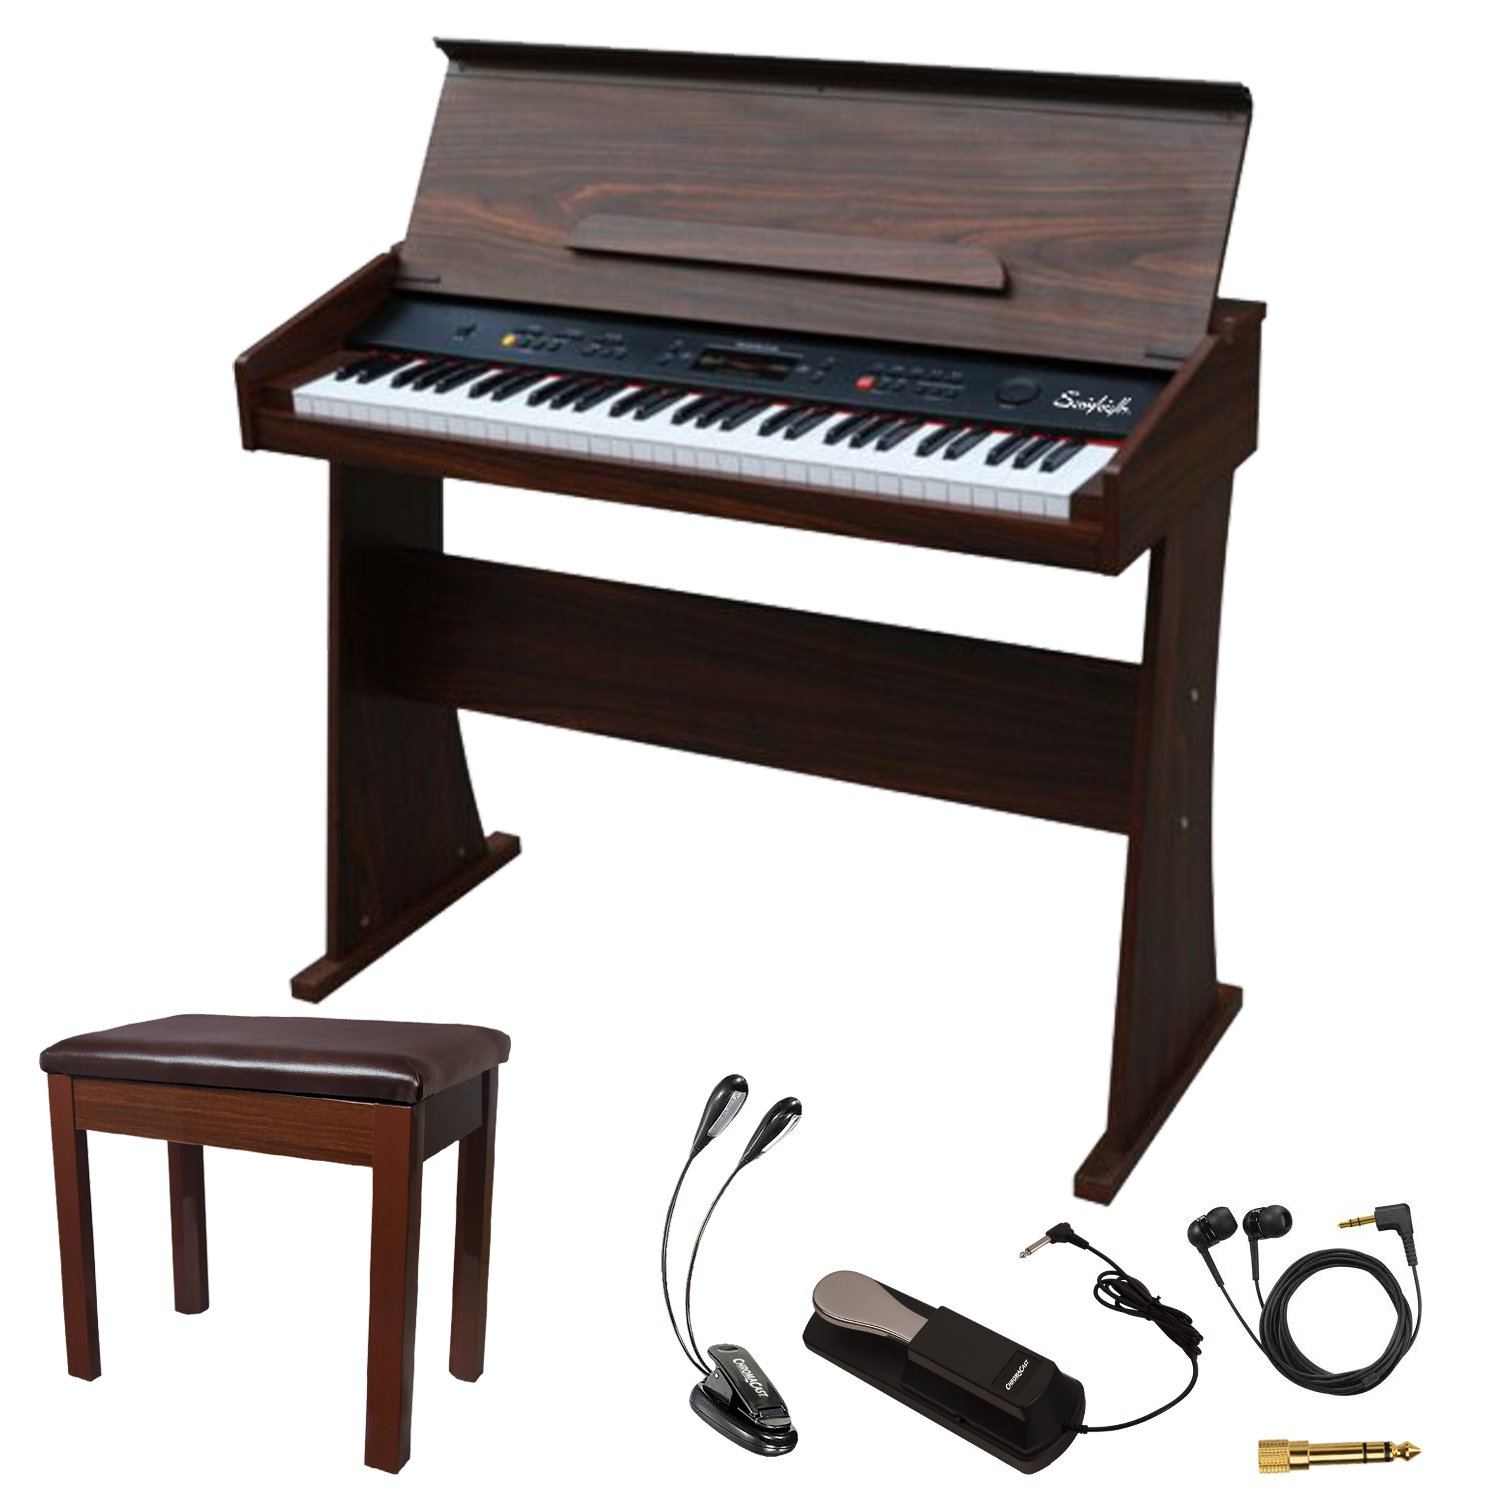 Sawtooth 61-Key Digital Console Piano (ST-DCP-61)